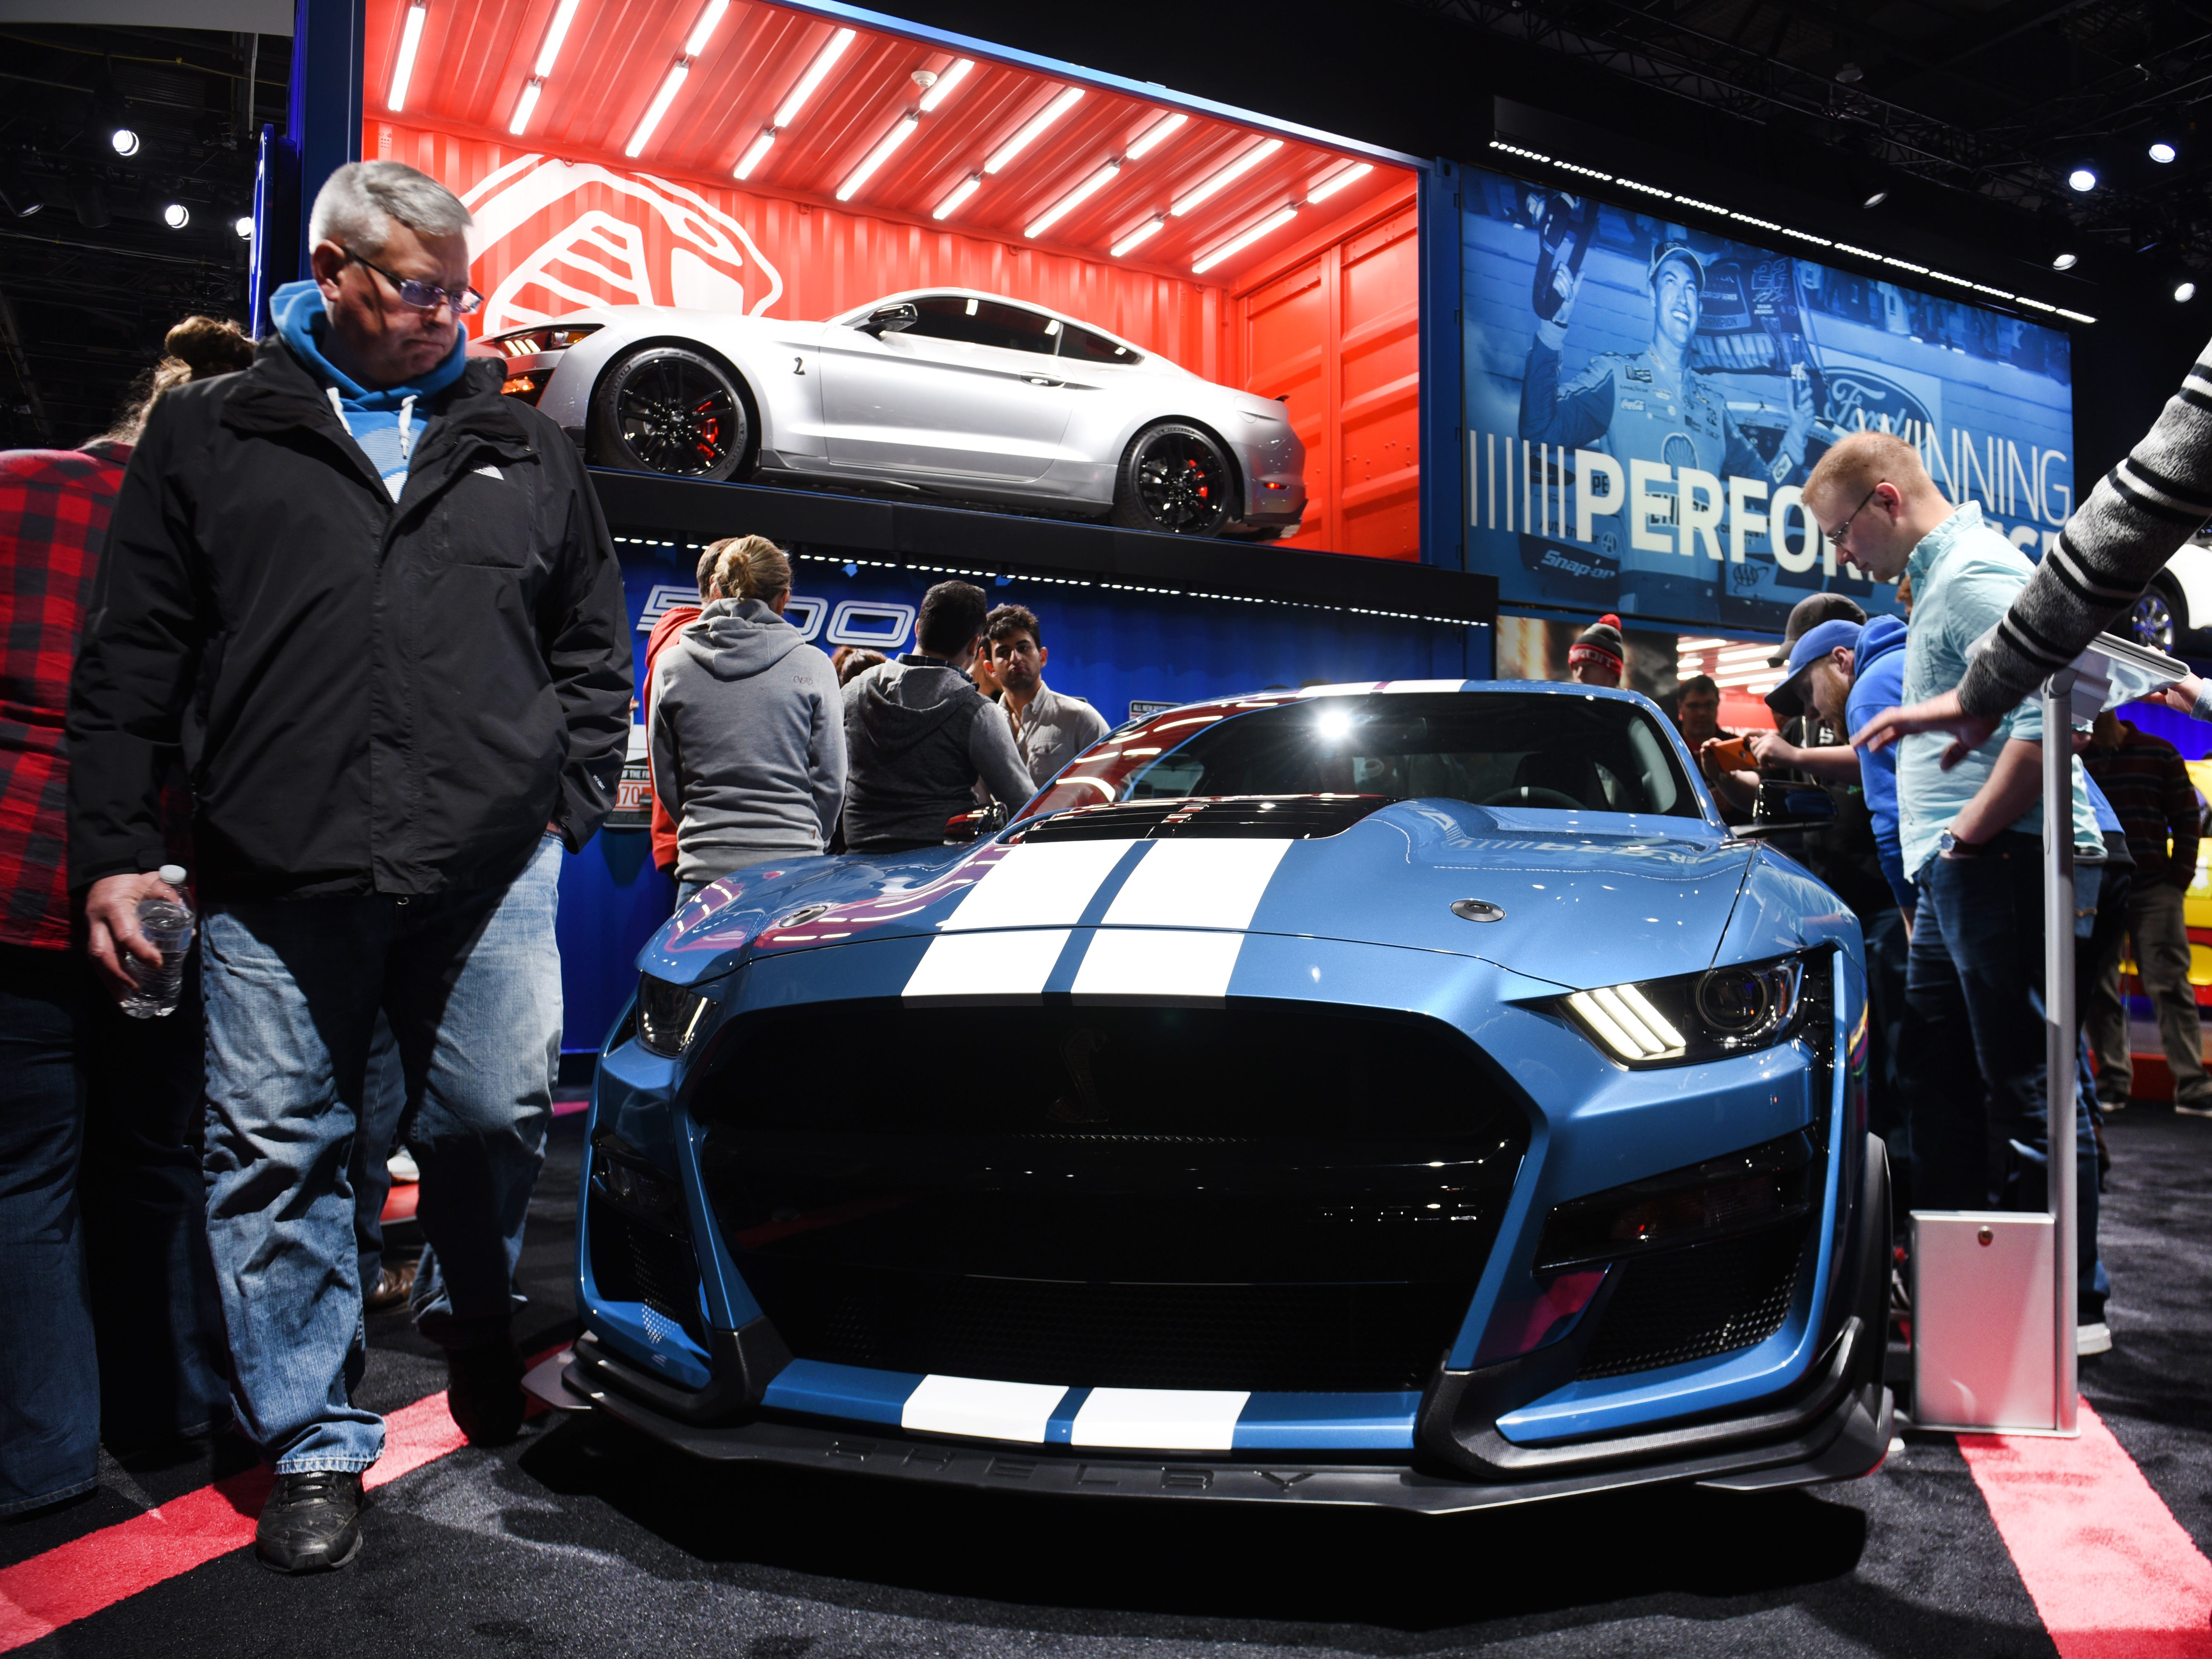 People admire the 2020 Ford Mustang Shelby GT500 at Cobo Center for the 2019 North American International Auto Show.